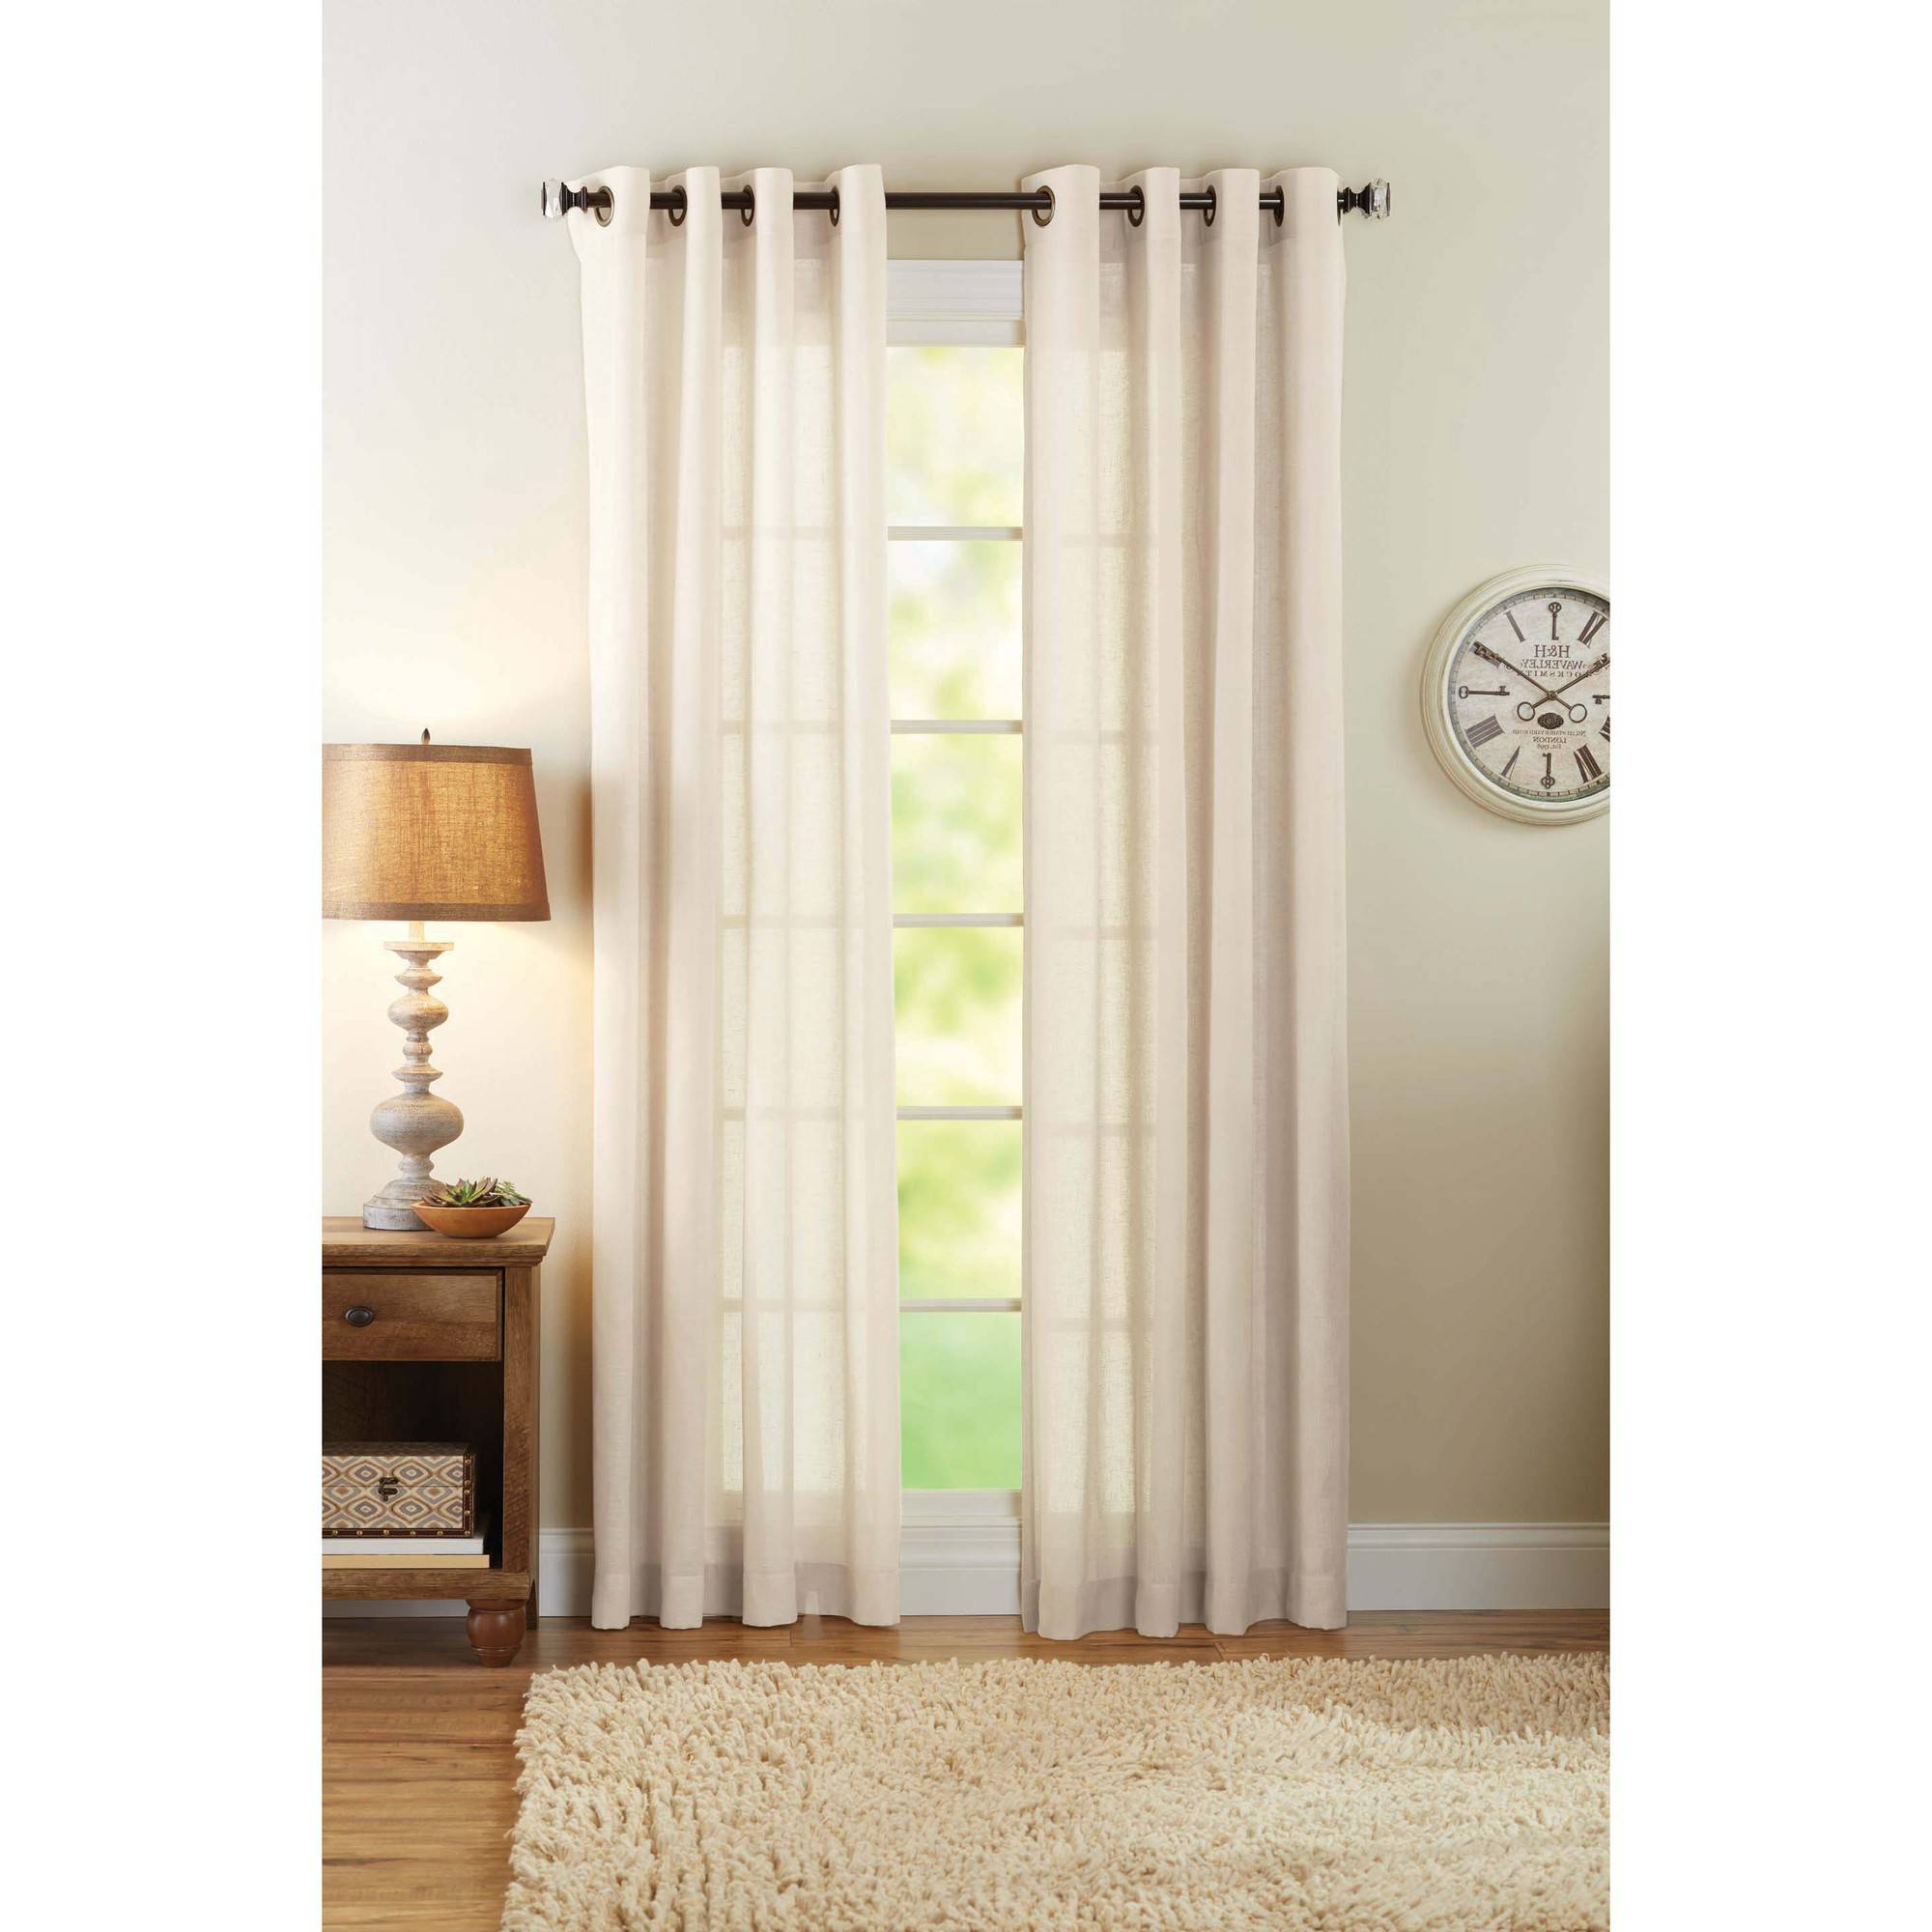 Well Liked Better Homes & Gardens Semi Sheer Grommet Curtain Panel, Bleached Linen – Walmart Pertaining To Grommet Curtain Panels (View 10 of 20)